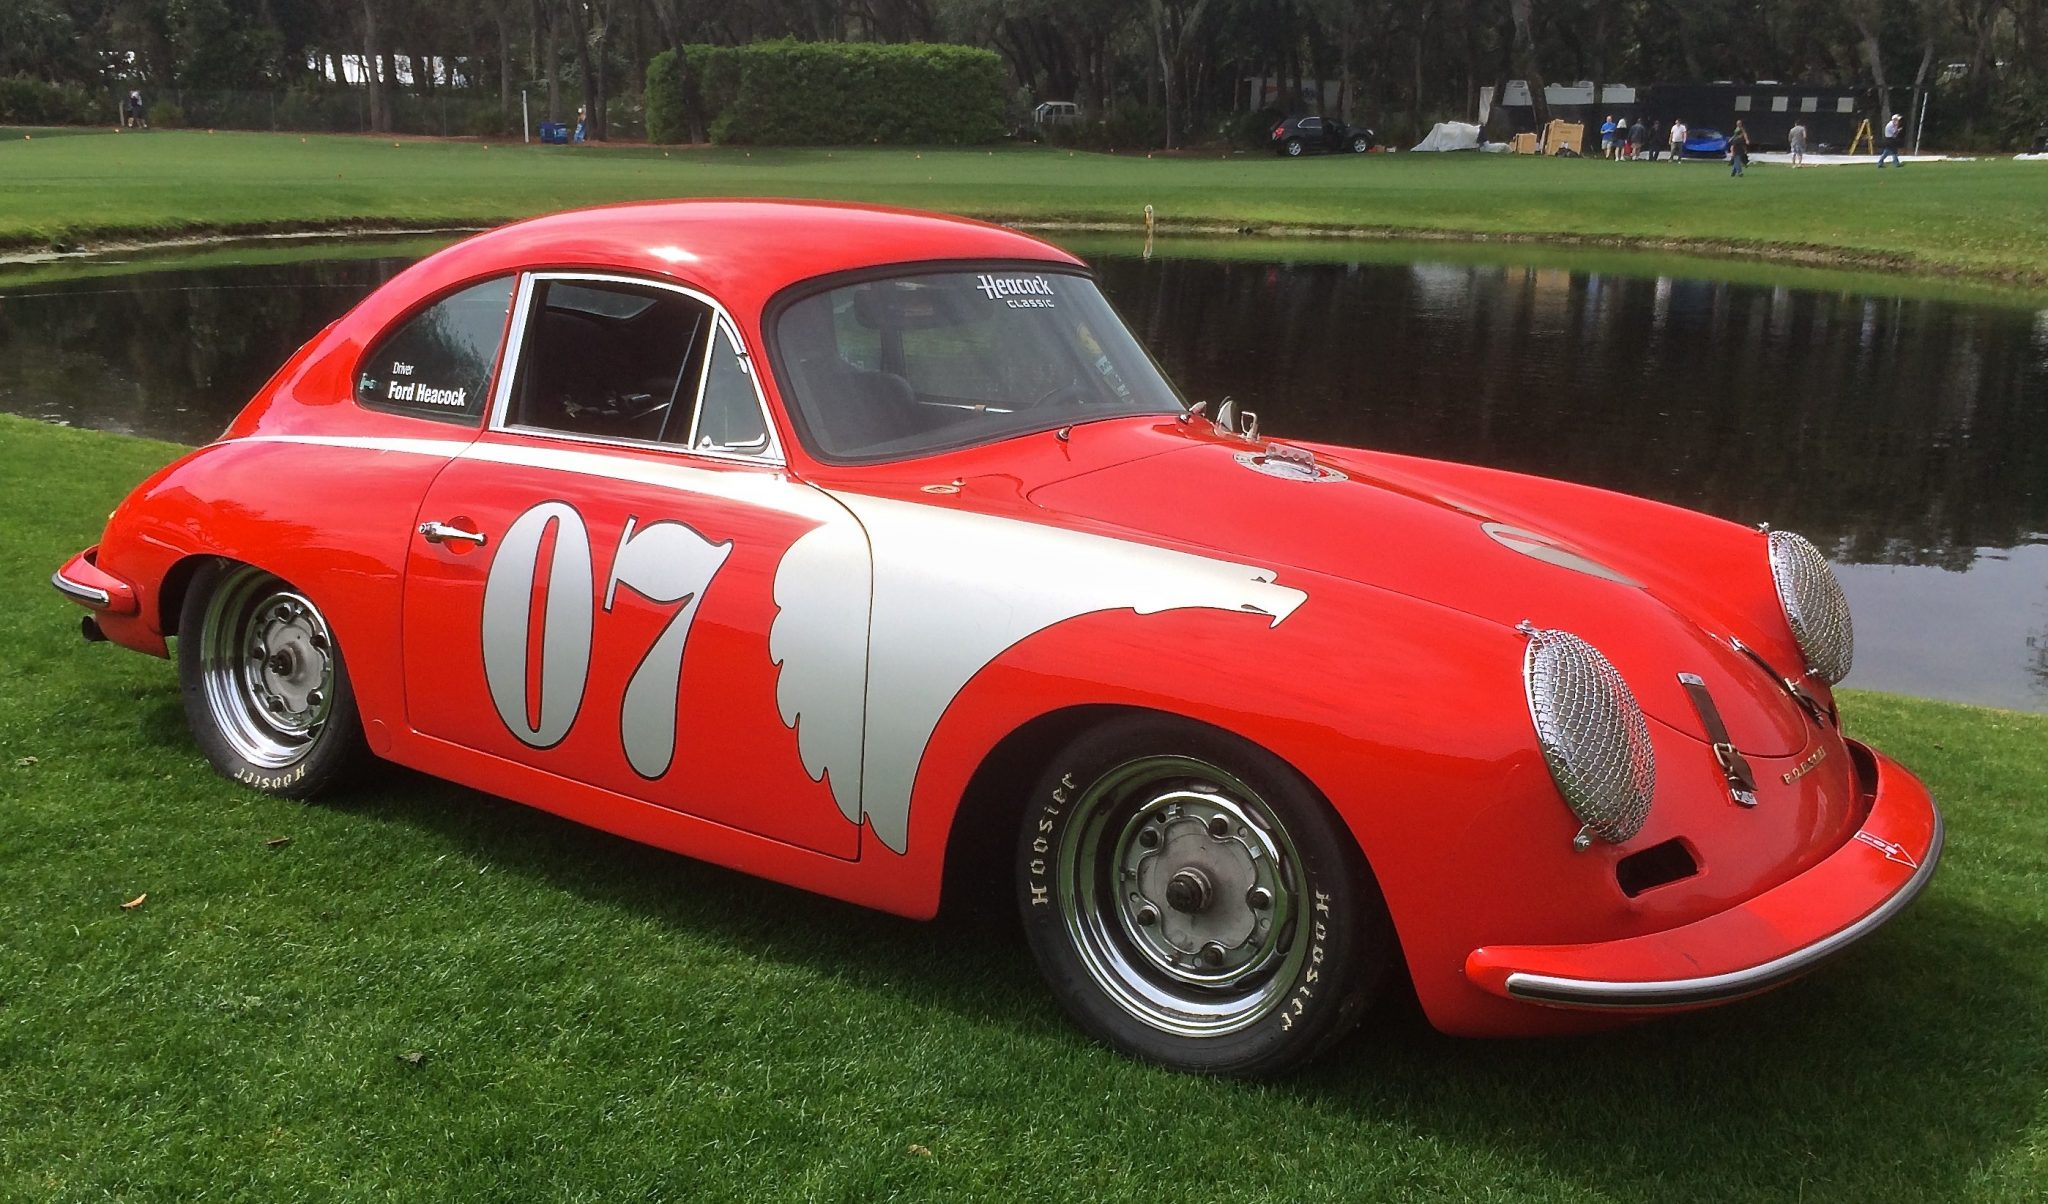 Classic Porsche race car at a show